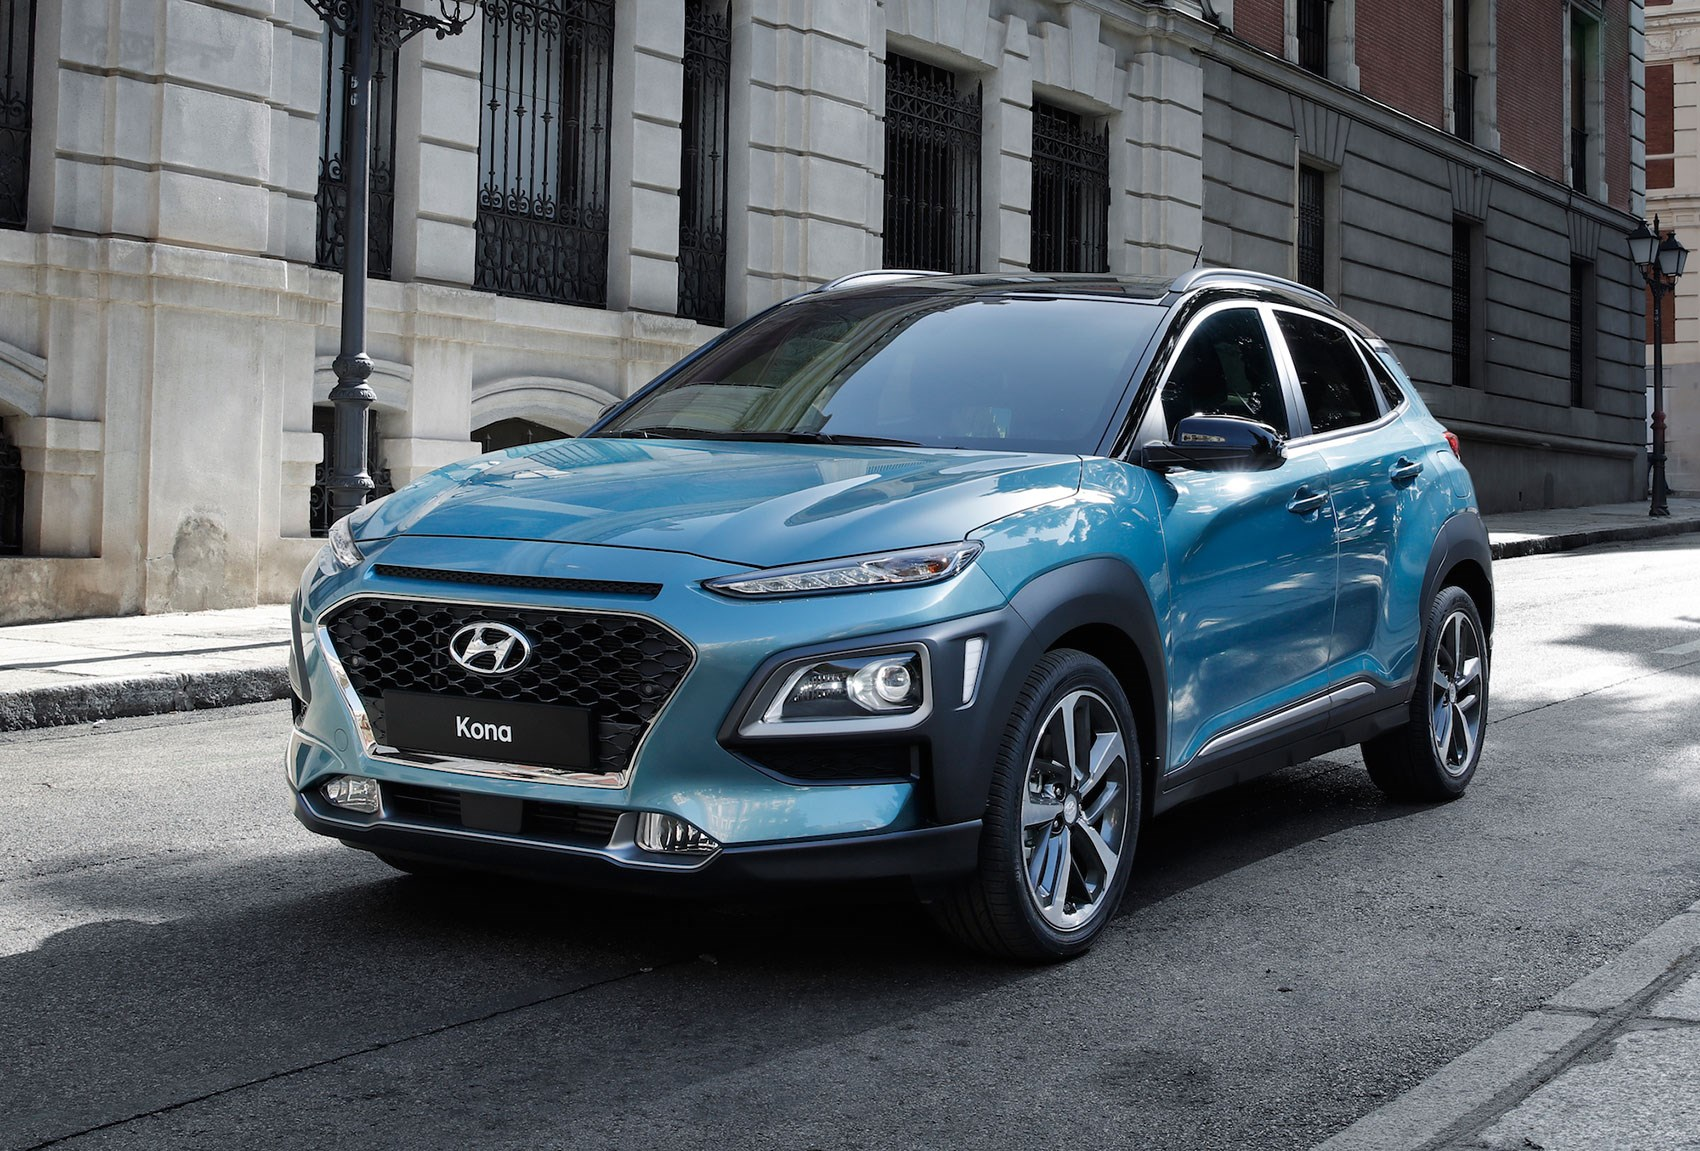 new hyundai kona suv specs details photos by car magazine. Black Bedroom Furniture Sets. Home Design Ideas